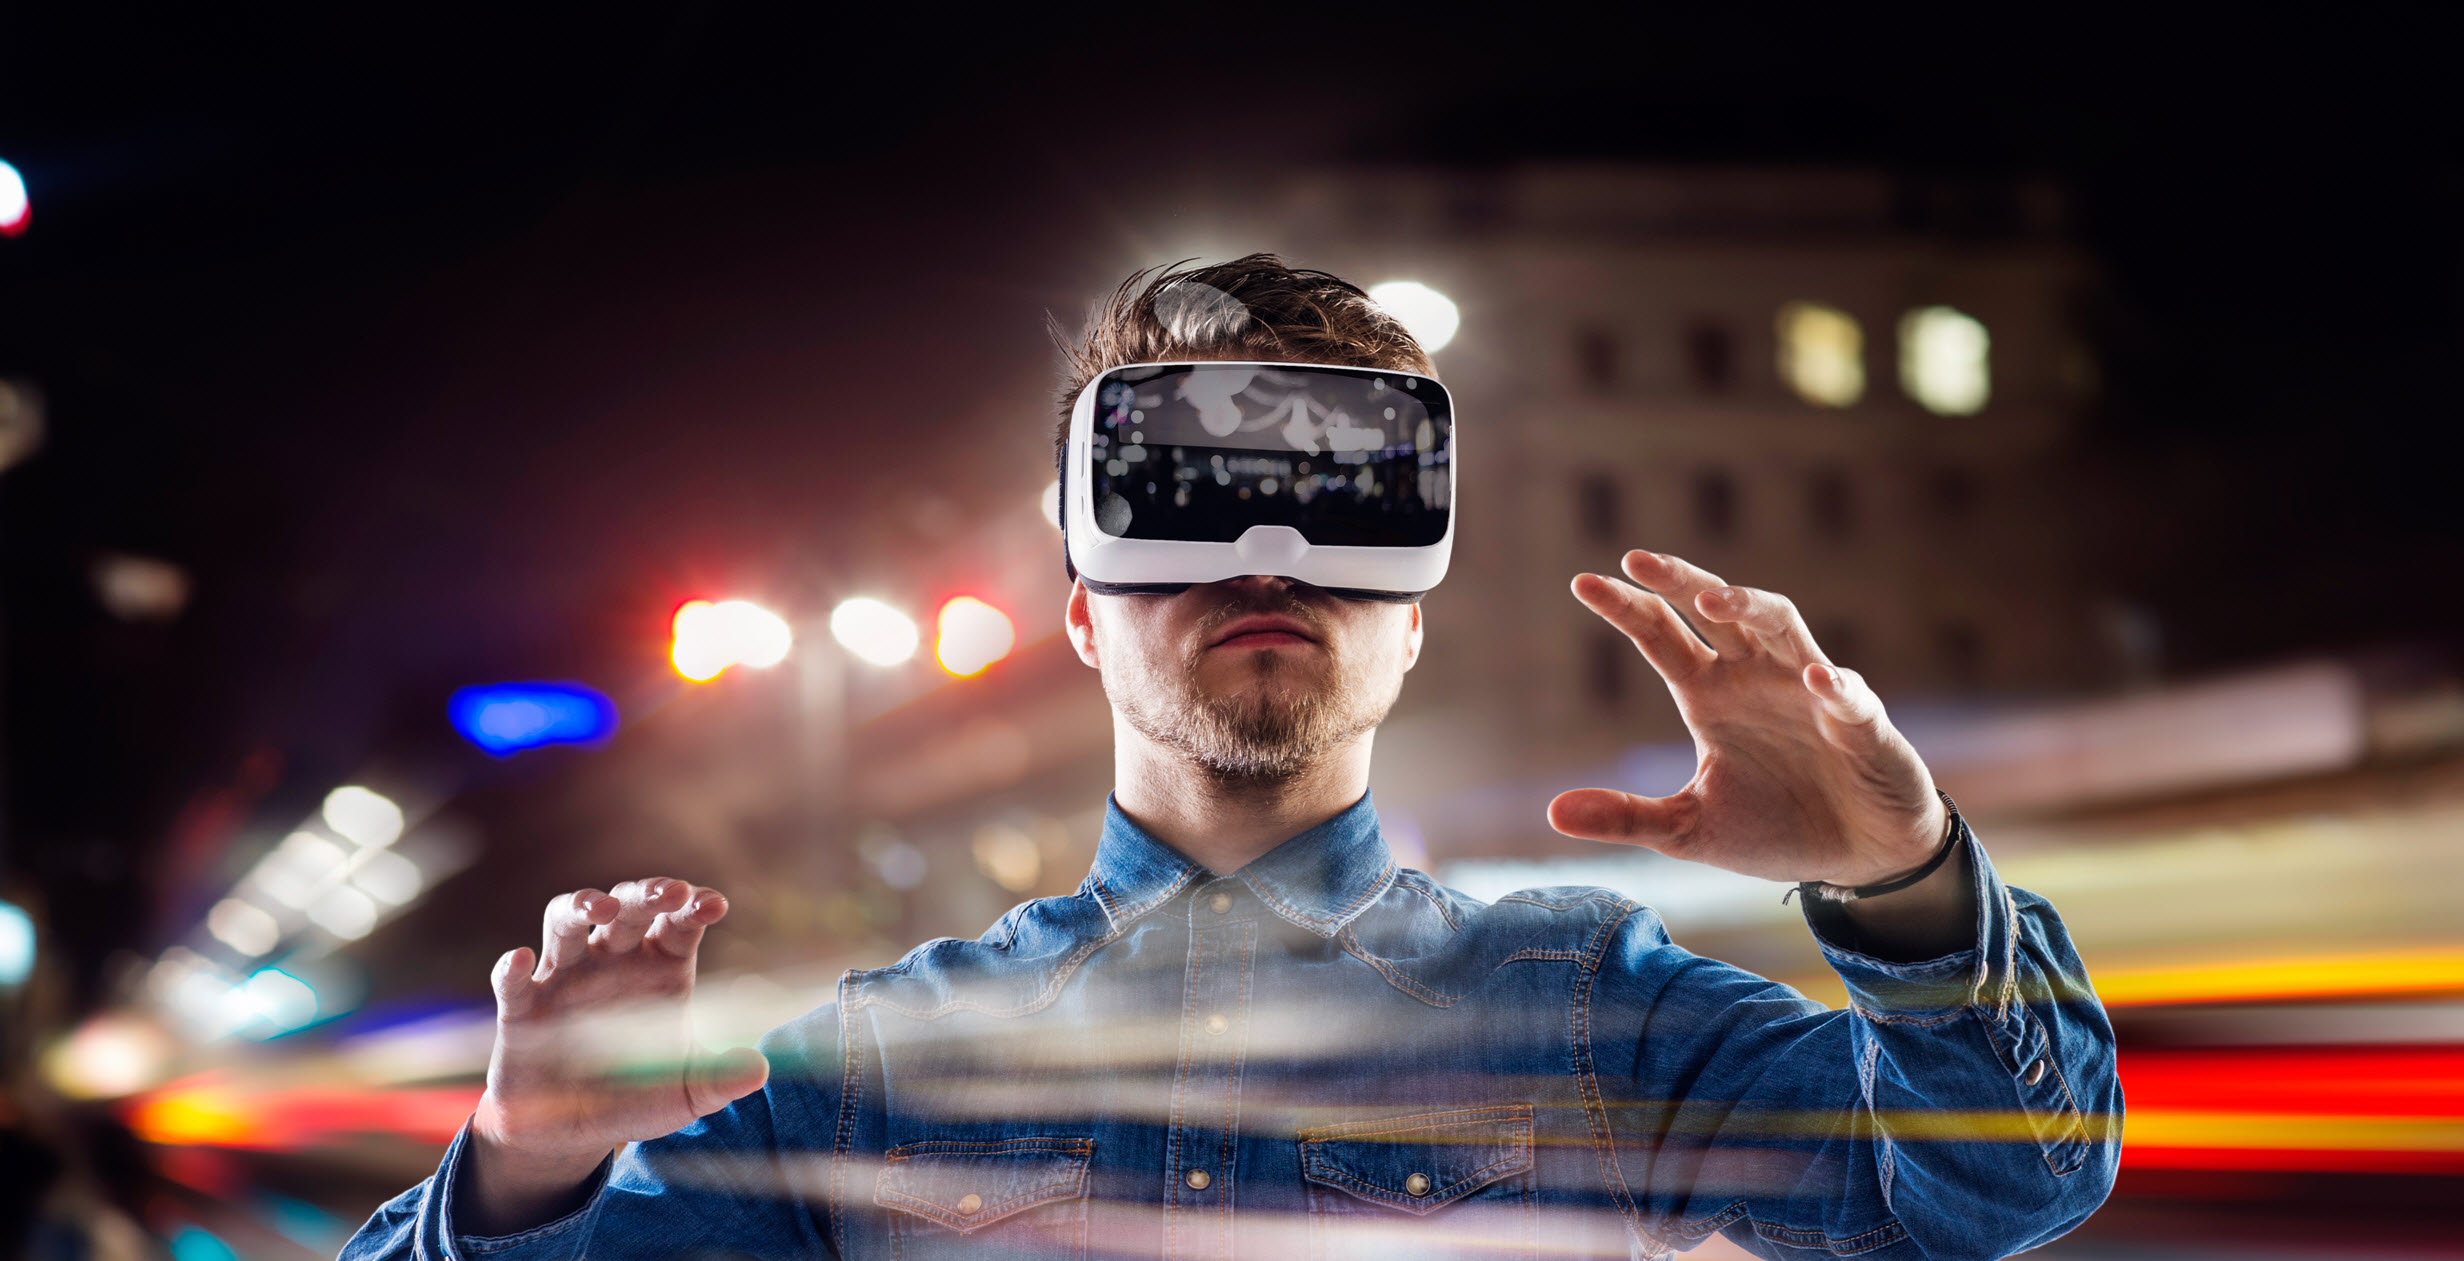 Free as a 'Bird': What to watch in wearable tech for visionaries